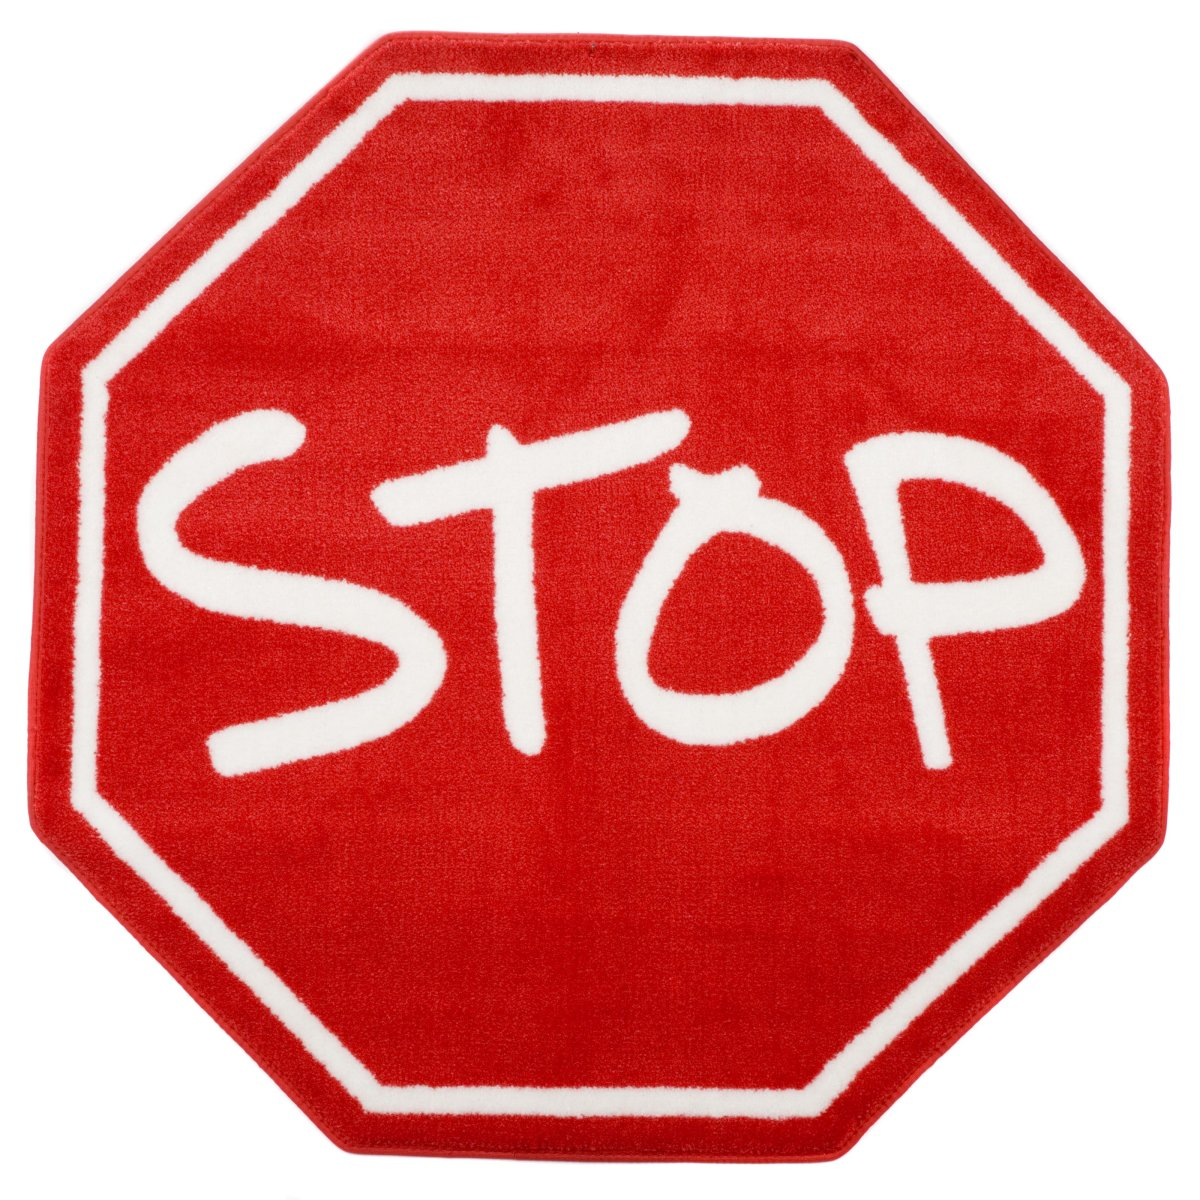 Images Stop Sign - ClipArt Best